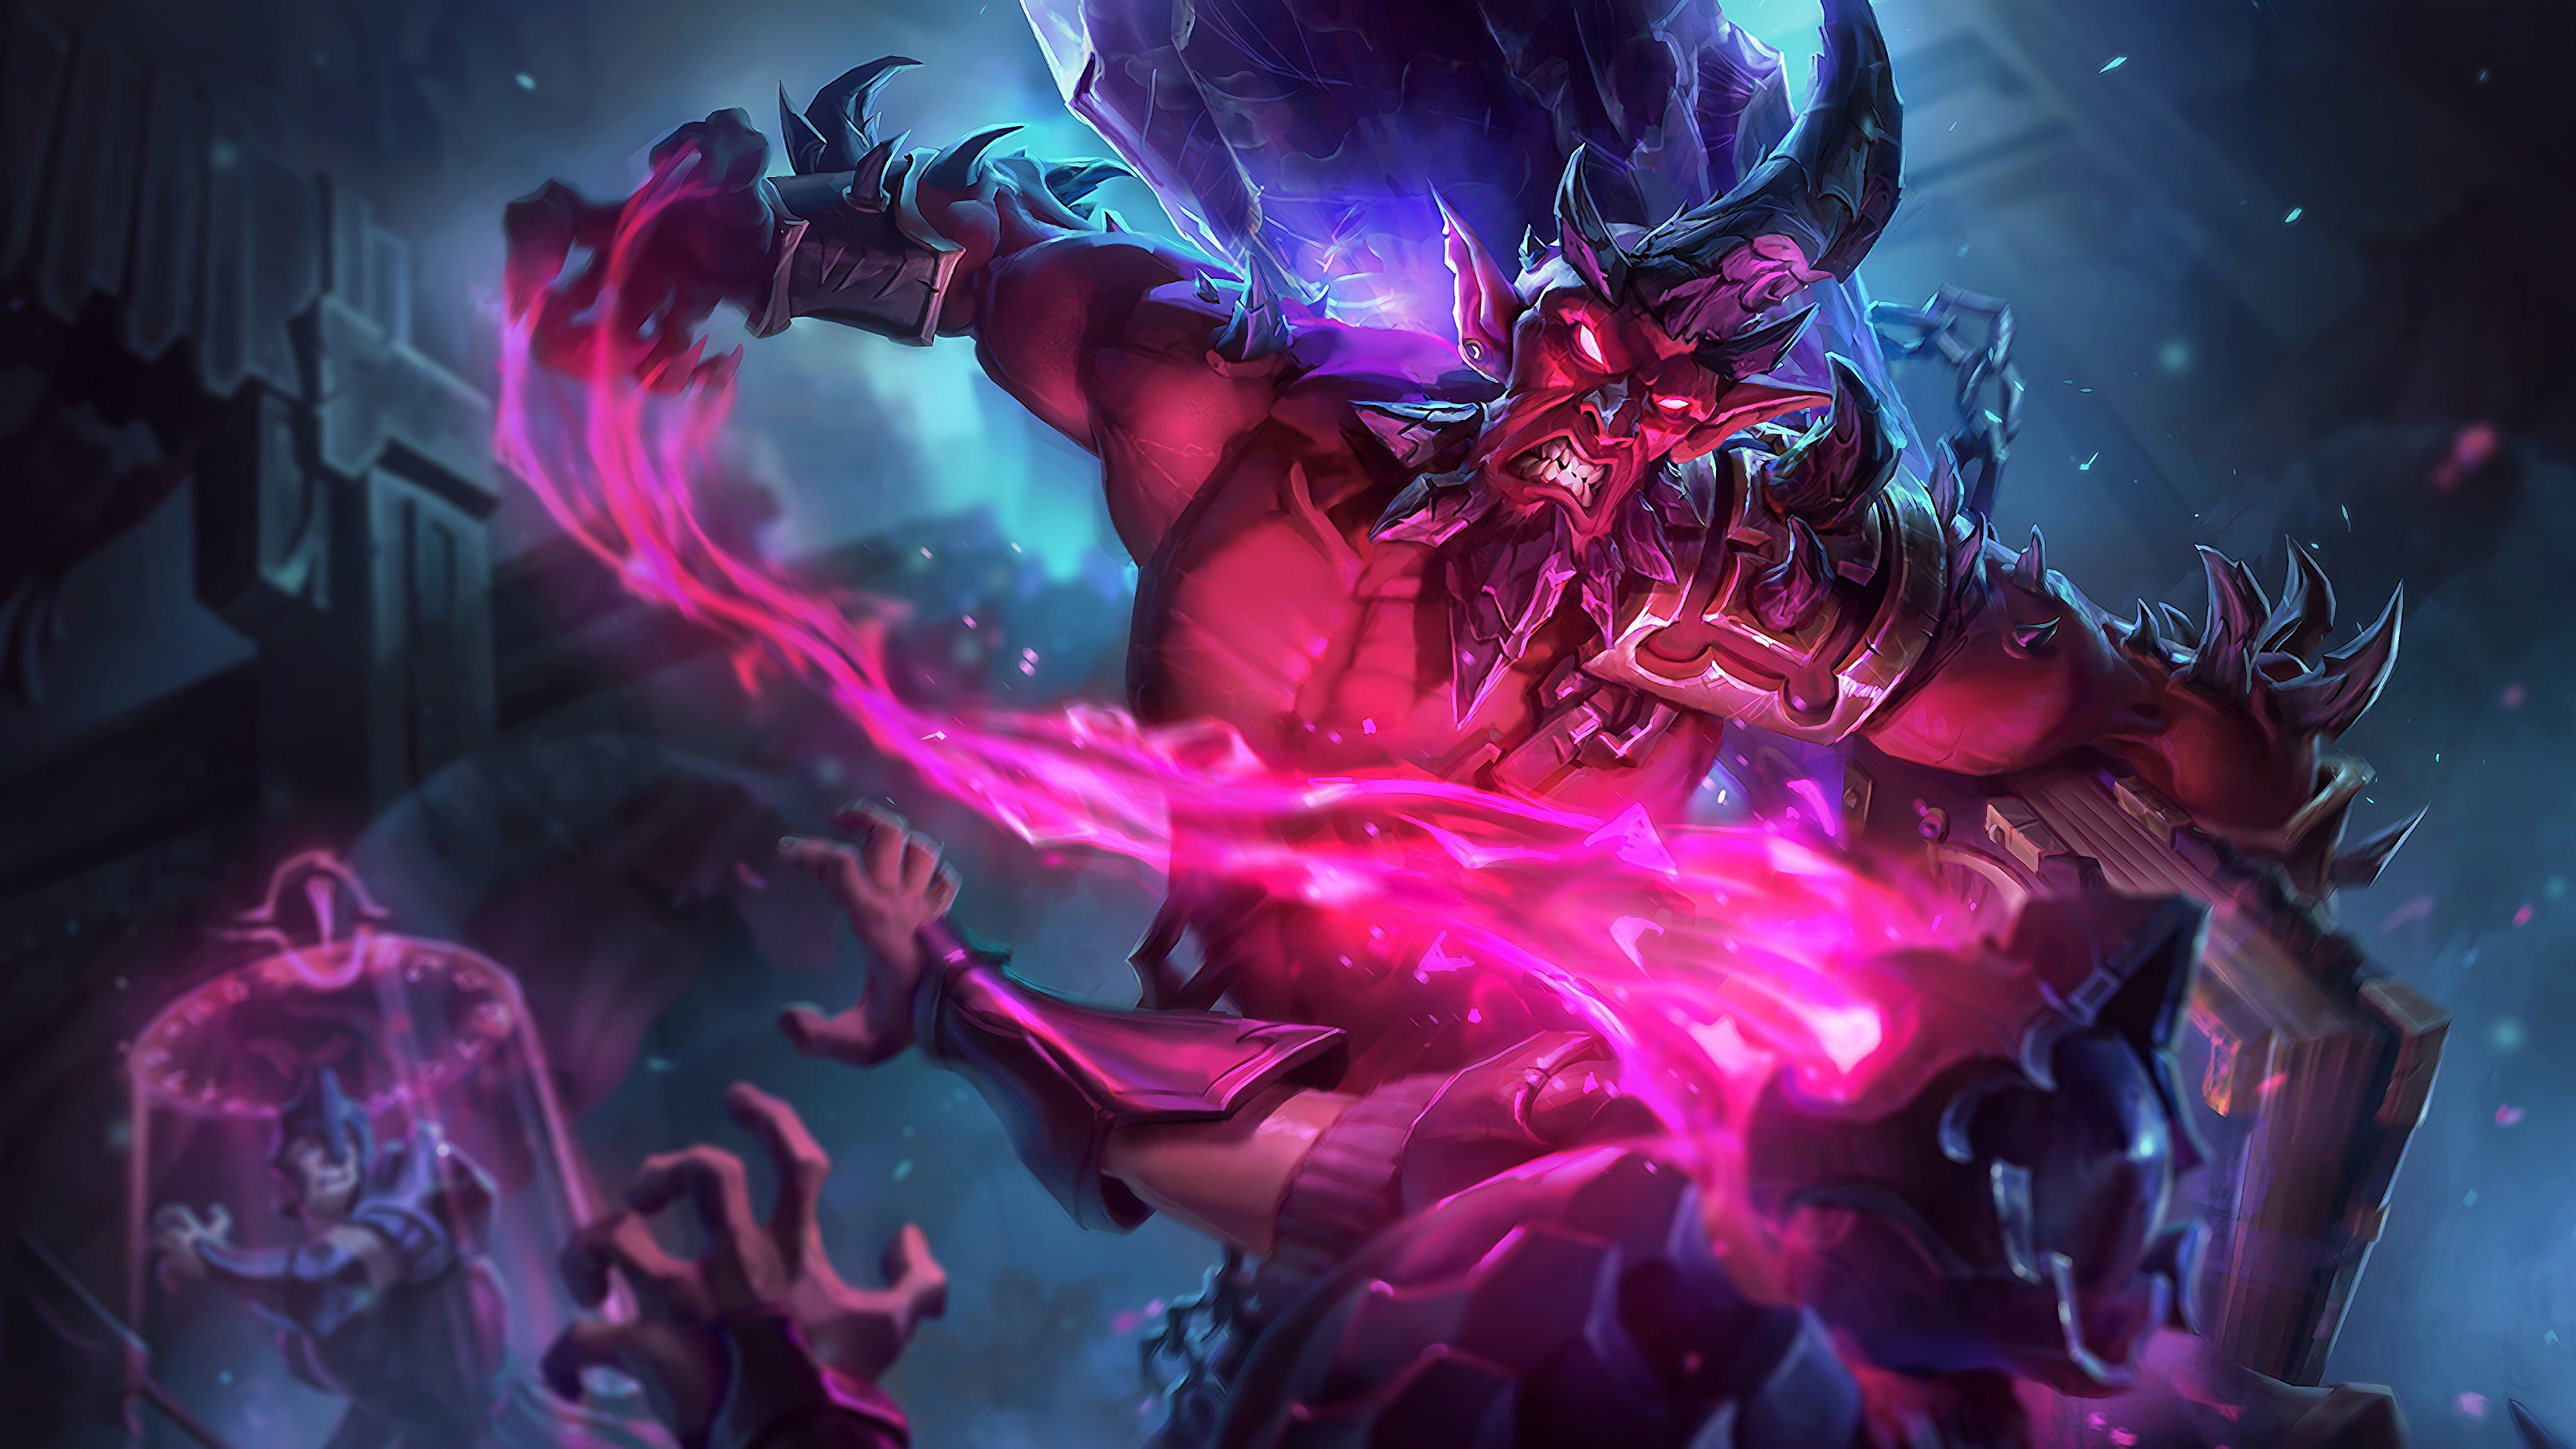 Wallpaper 4k Dark Crystal Ryze Lol Splash Art League Of Legends League Of Legends Ryze